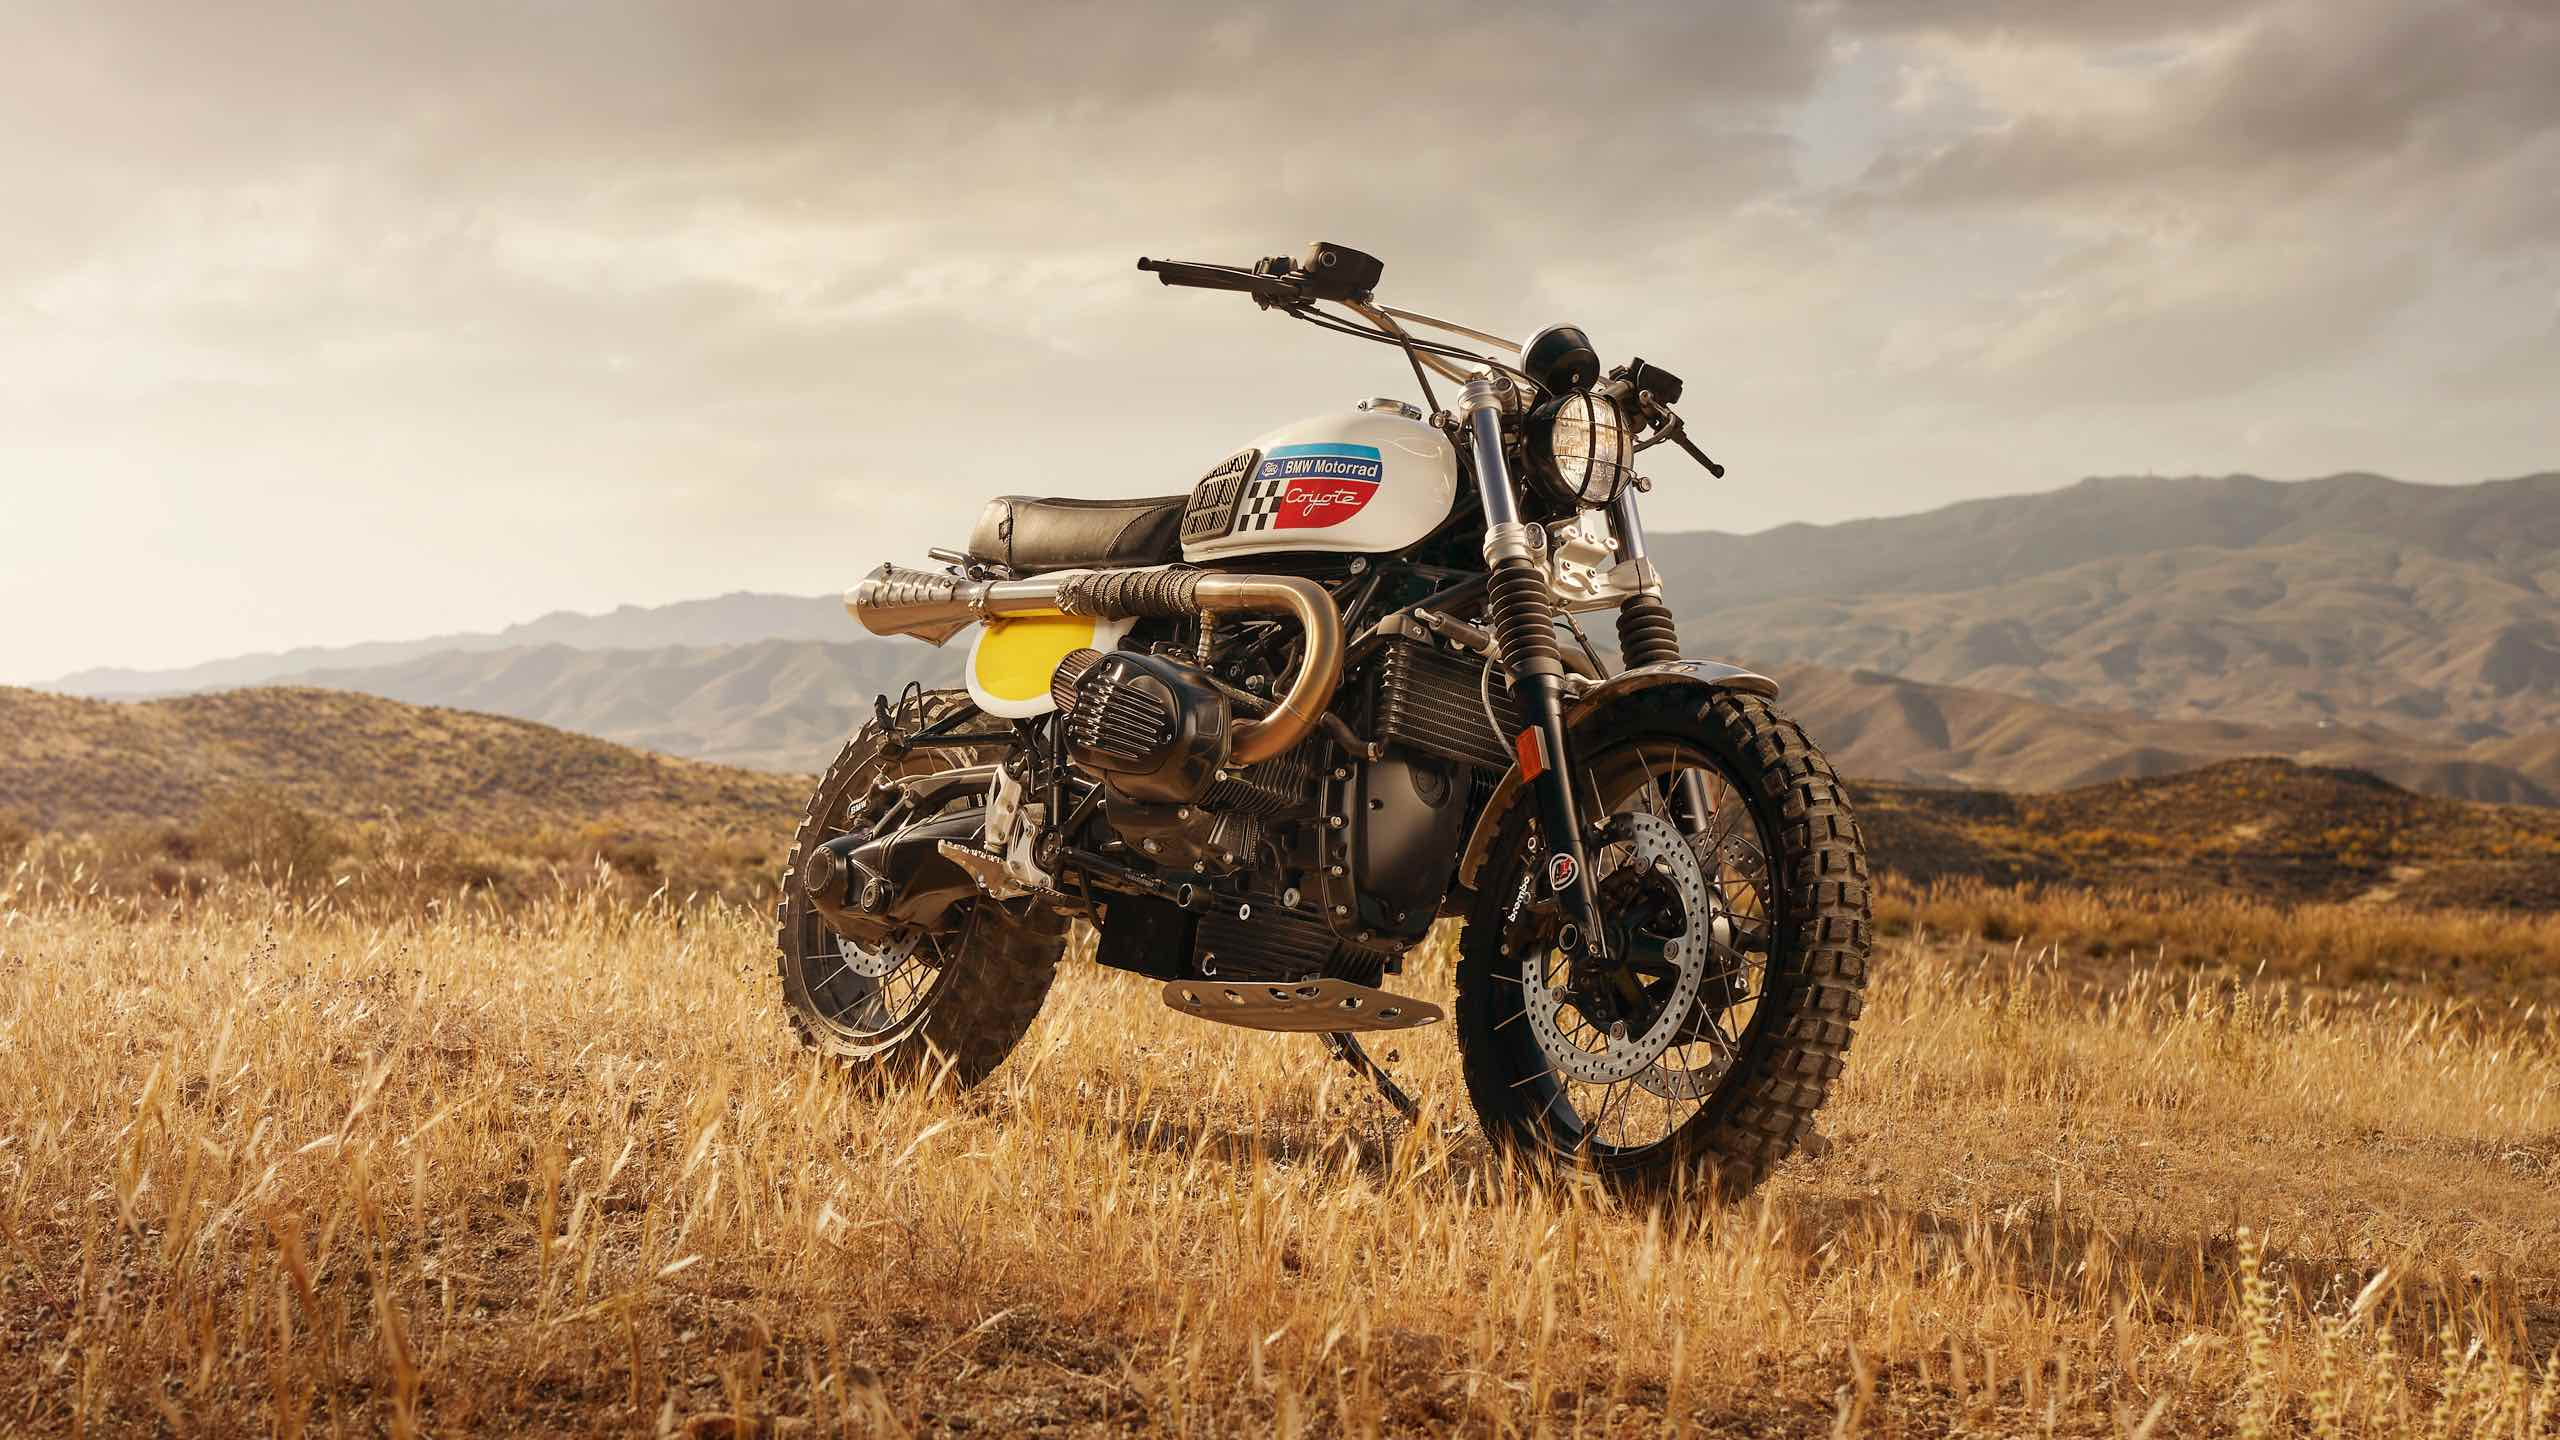 BMW R NineT Coyote - Fuel Motorcycles - Rust and Glory - cover